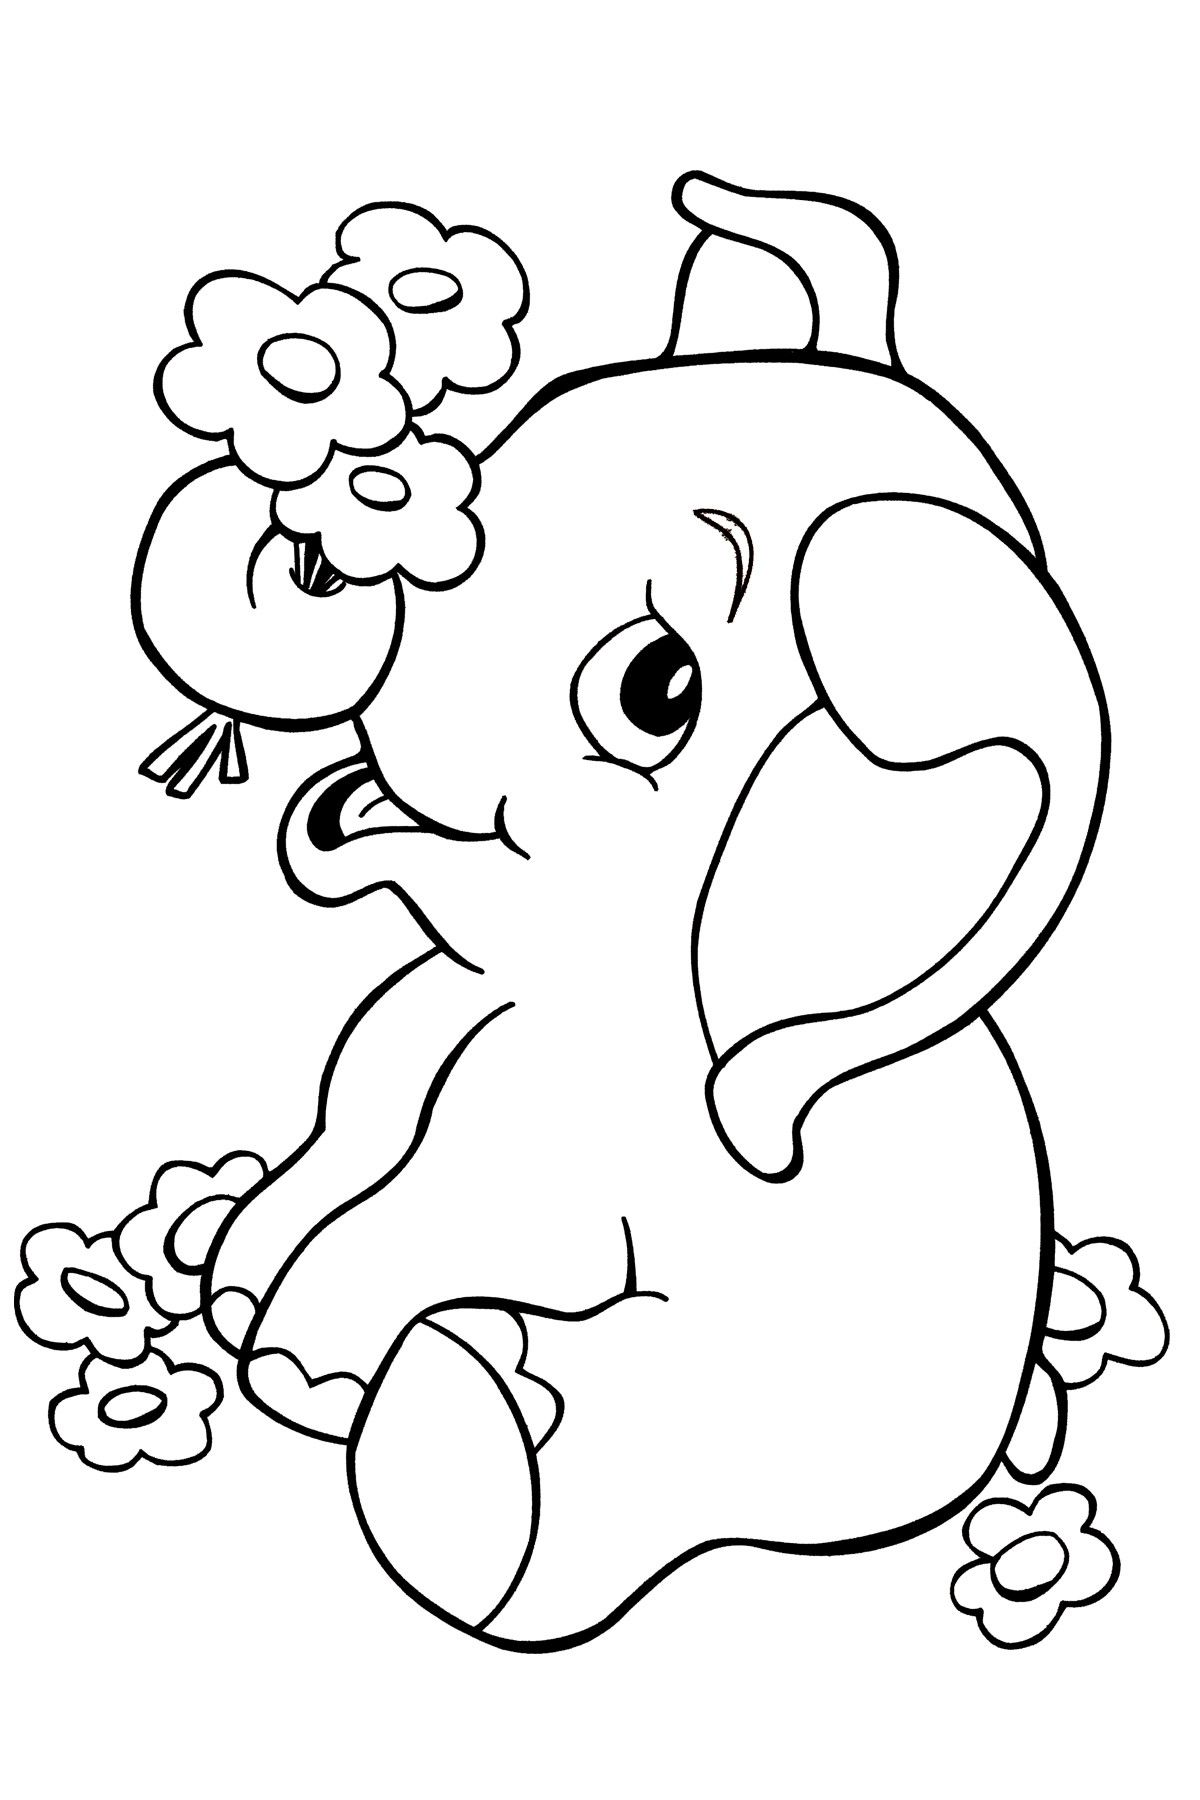 Elephant Coloring Book For Kids Free Printable Elephant Coloring Pages For Kids Elephant Coloring Page Jungle Coloring Pages Cartoon Coloring Pages